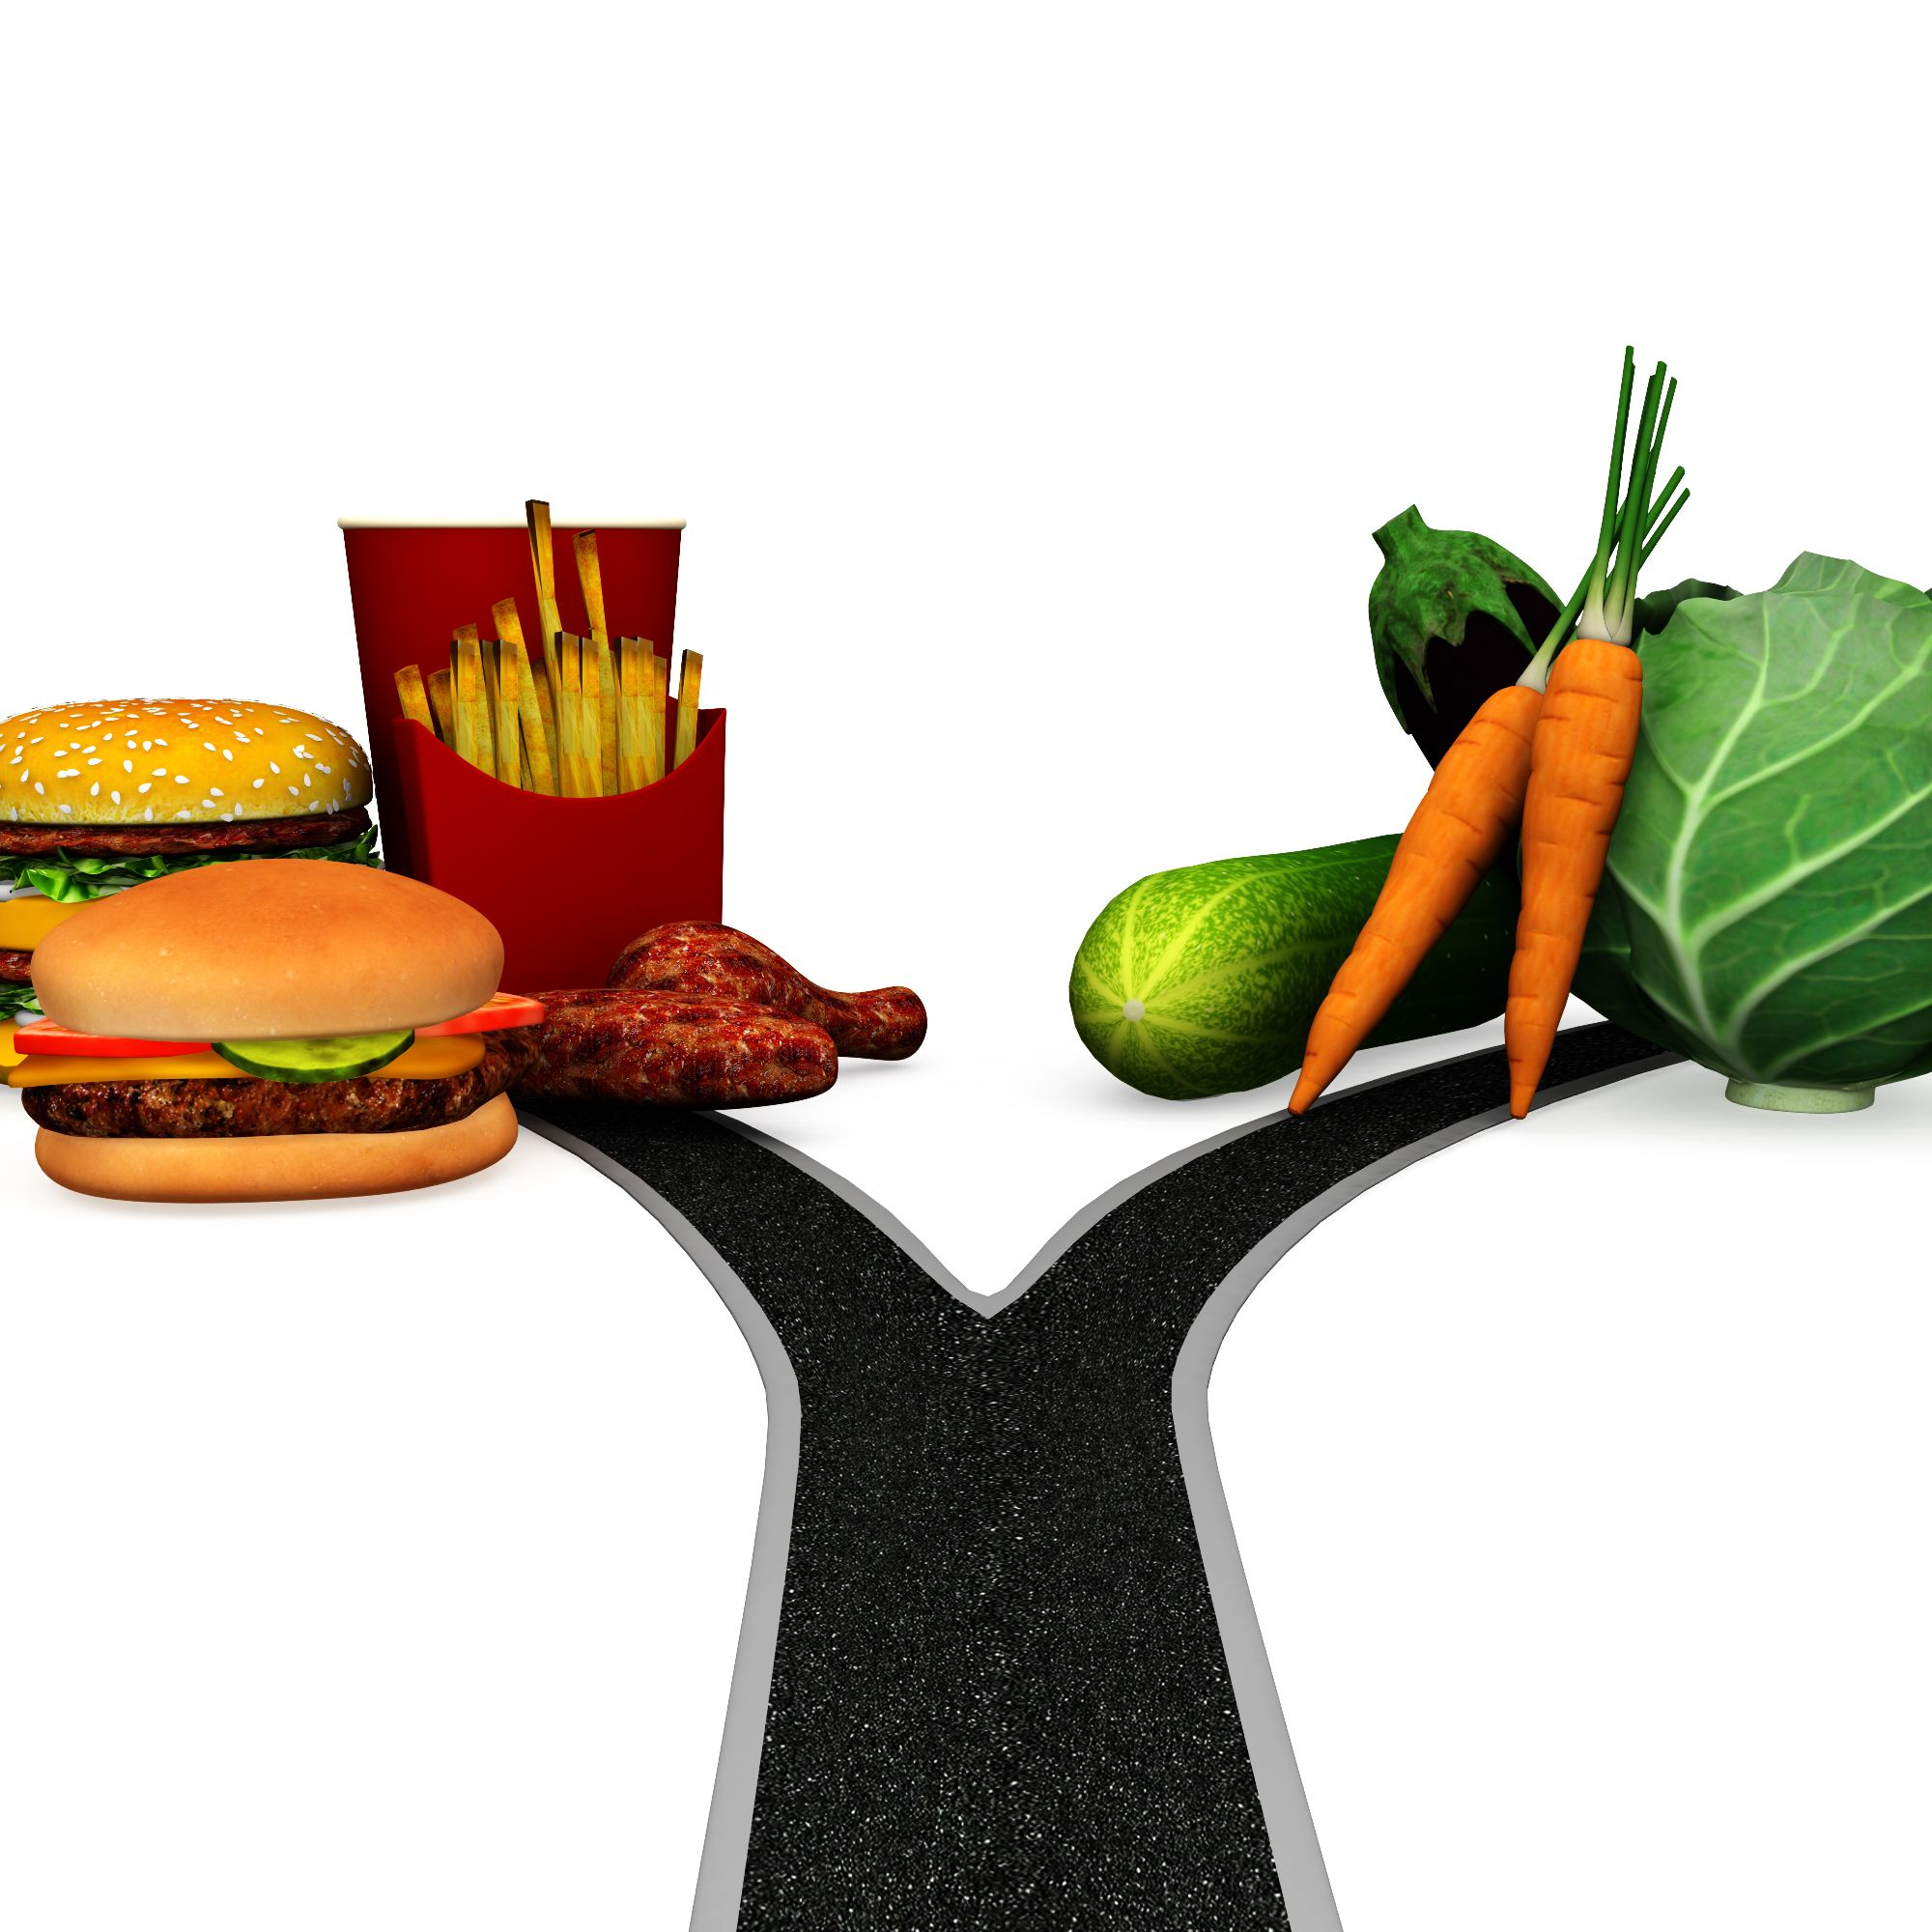 Bad For You Foods In Disguise